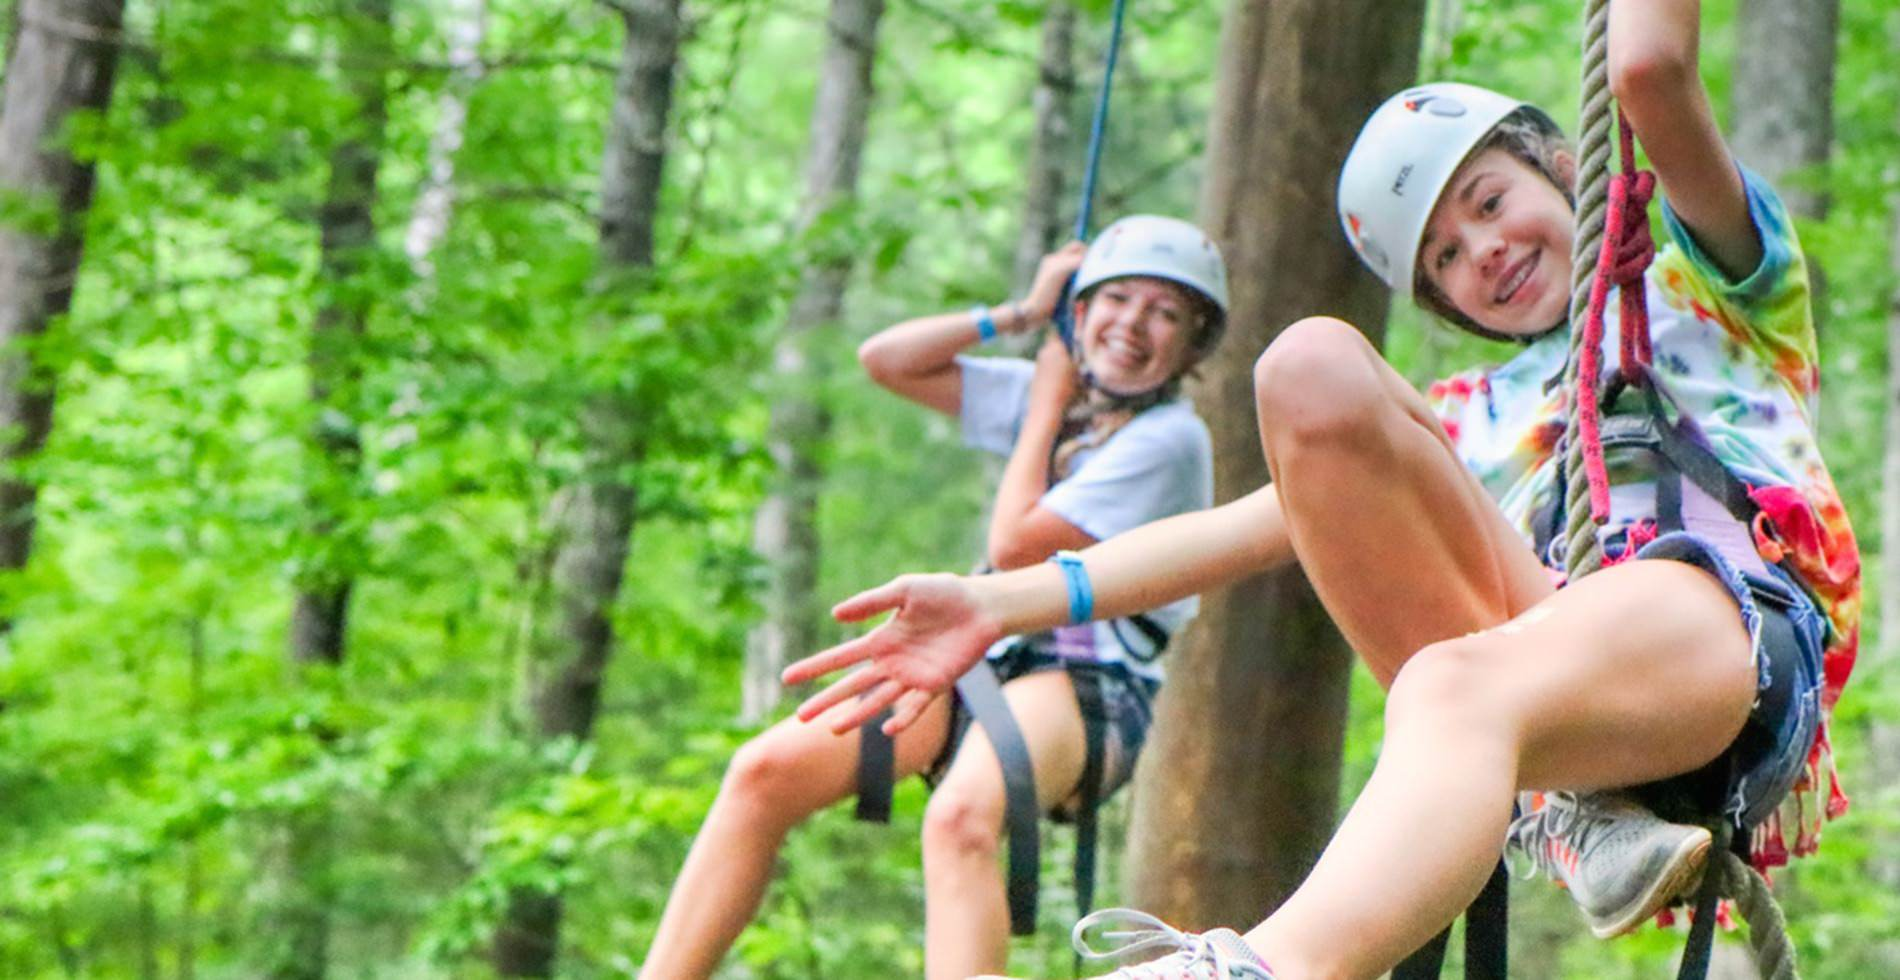 camp girls on climbing ropes